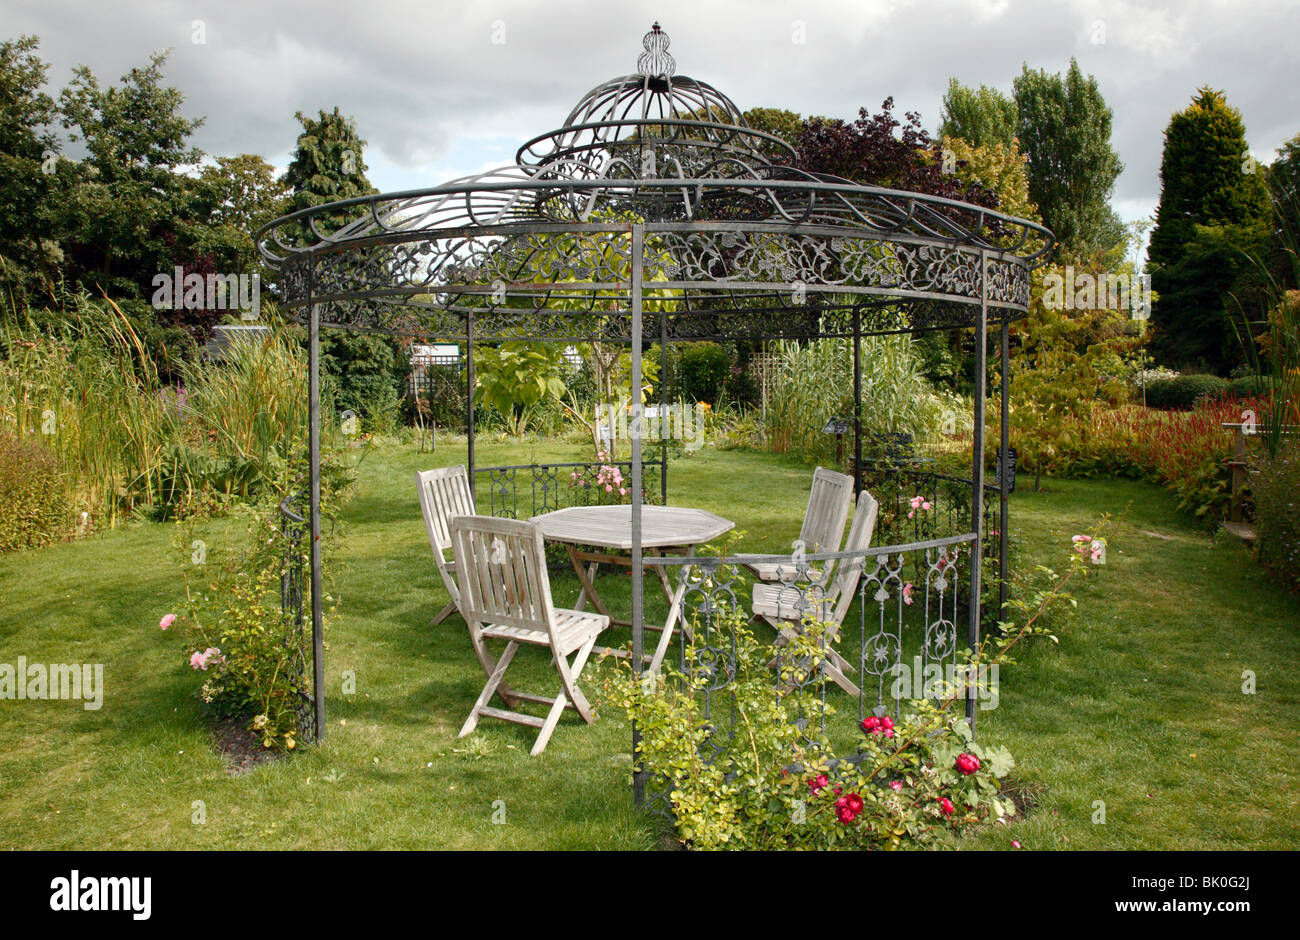 Metal Garden Gazebo Large Metal Gazebo Containg Garden Furniture In The Secret